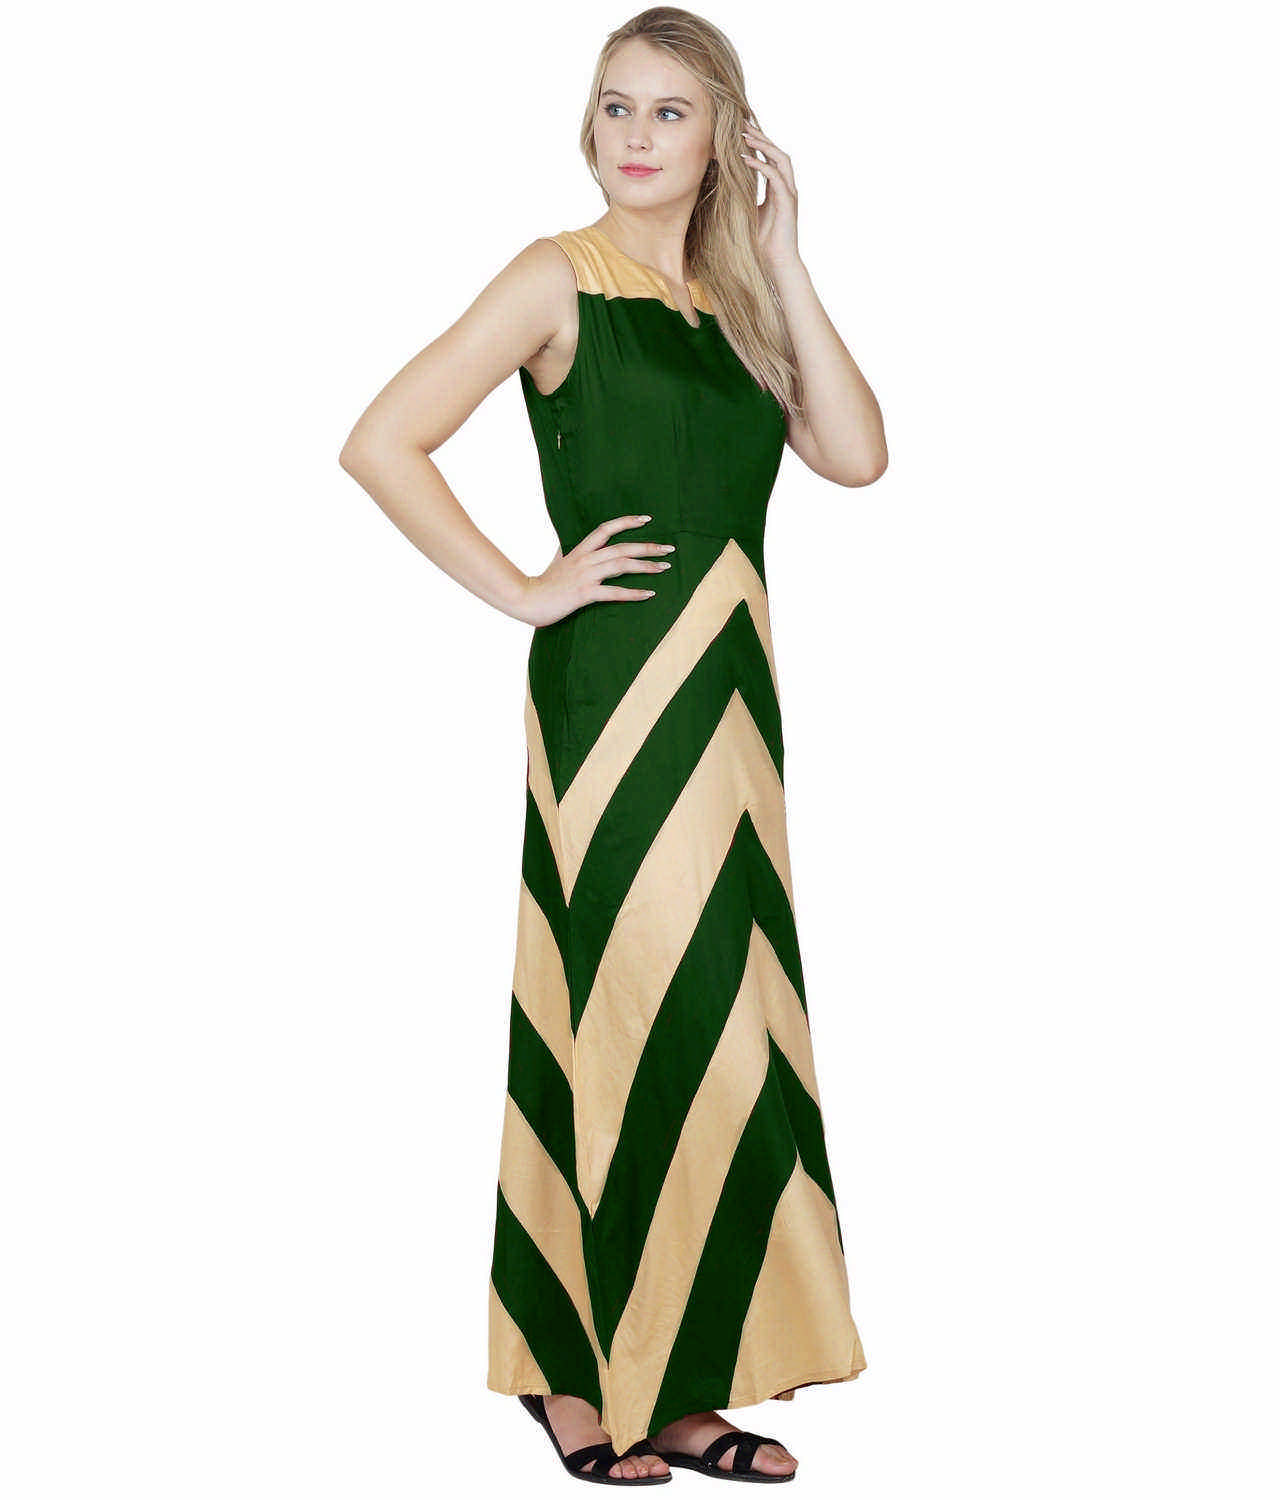 Color Block Empire Slim Fit Maxi Dress in Gold:Bottle Green